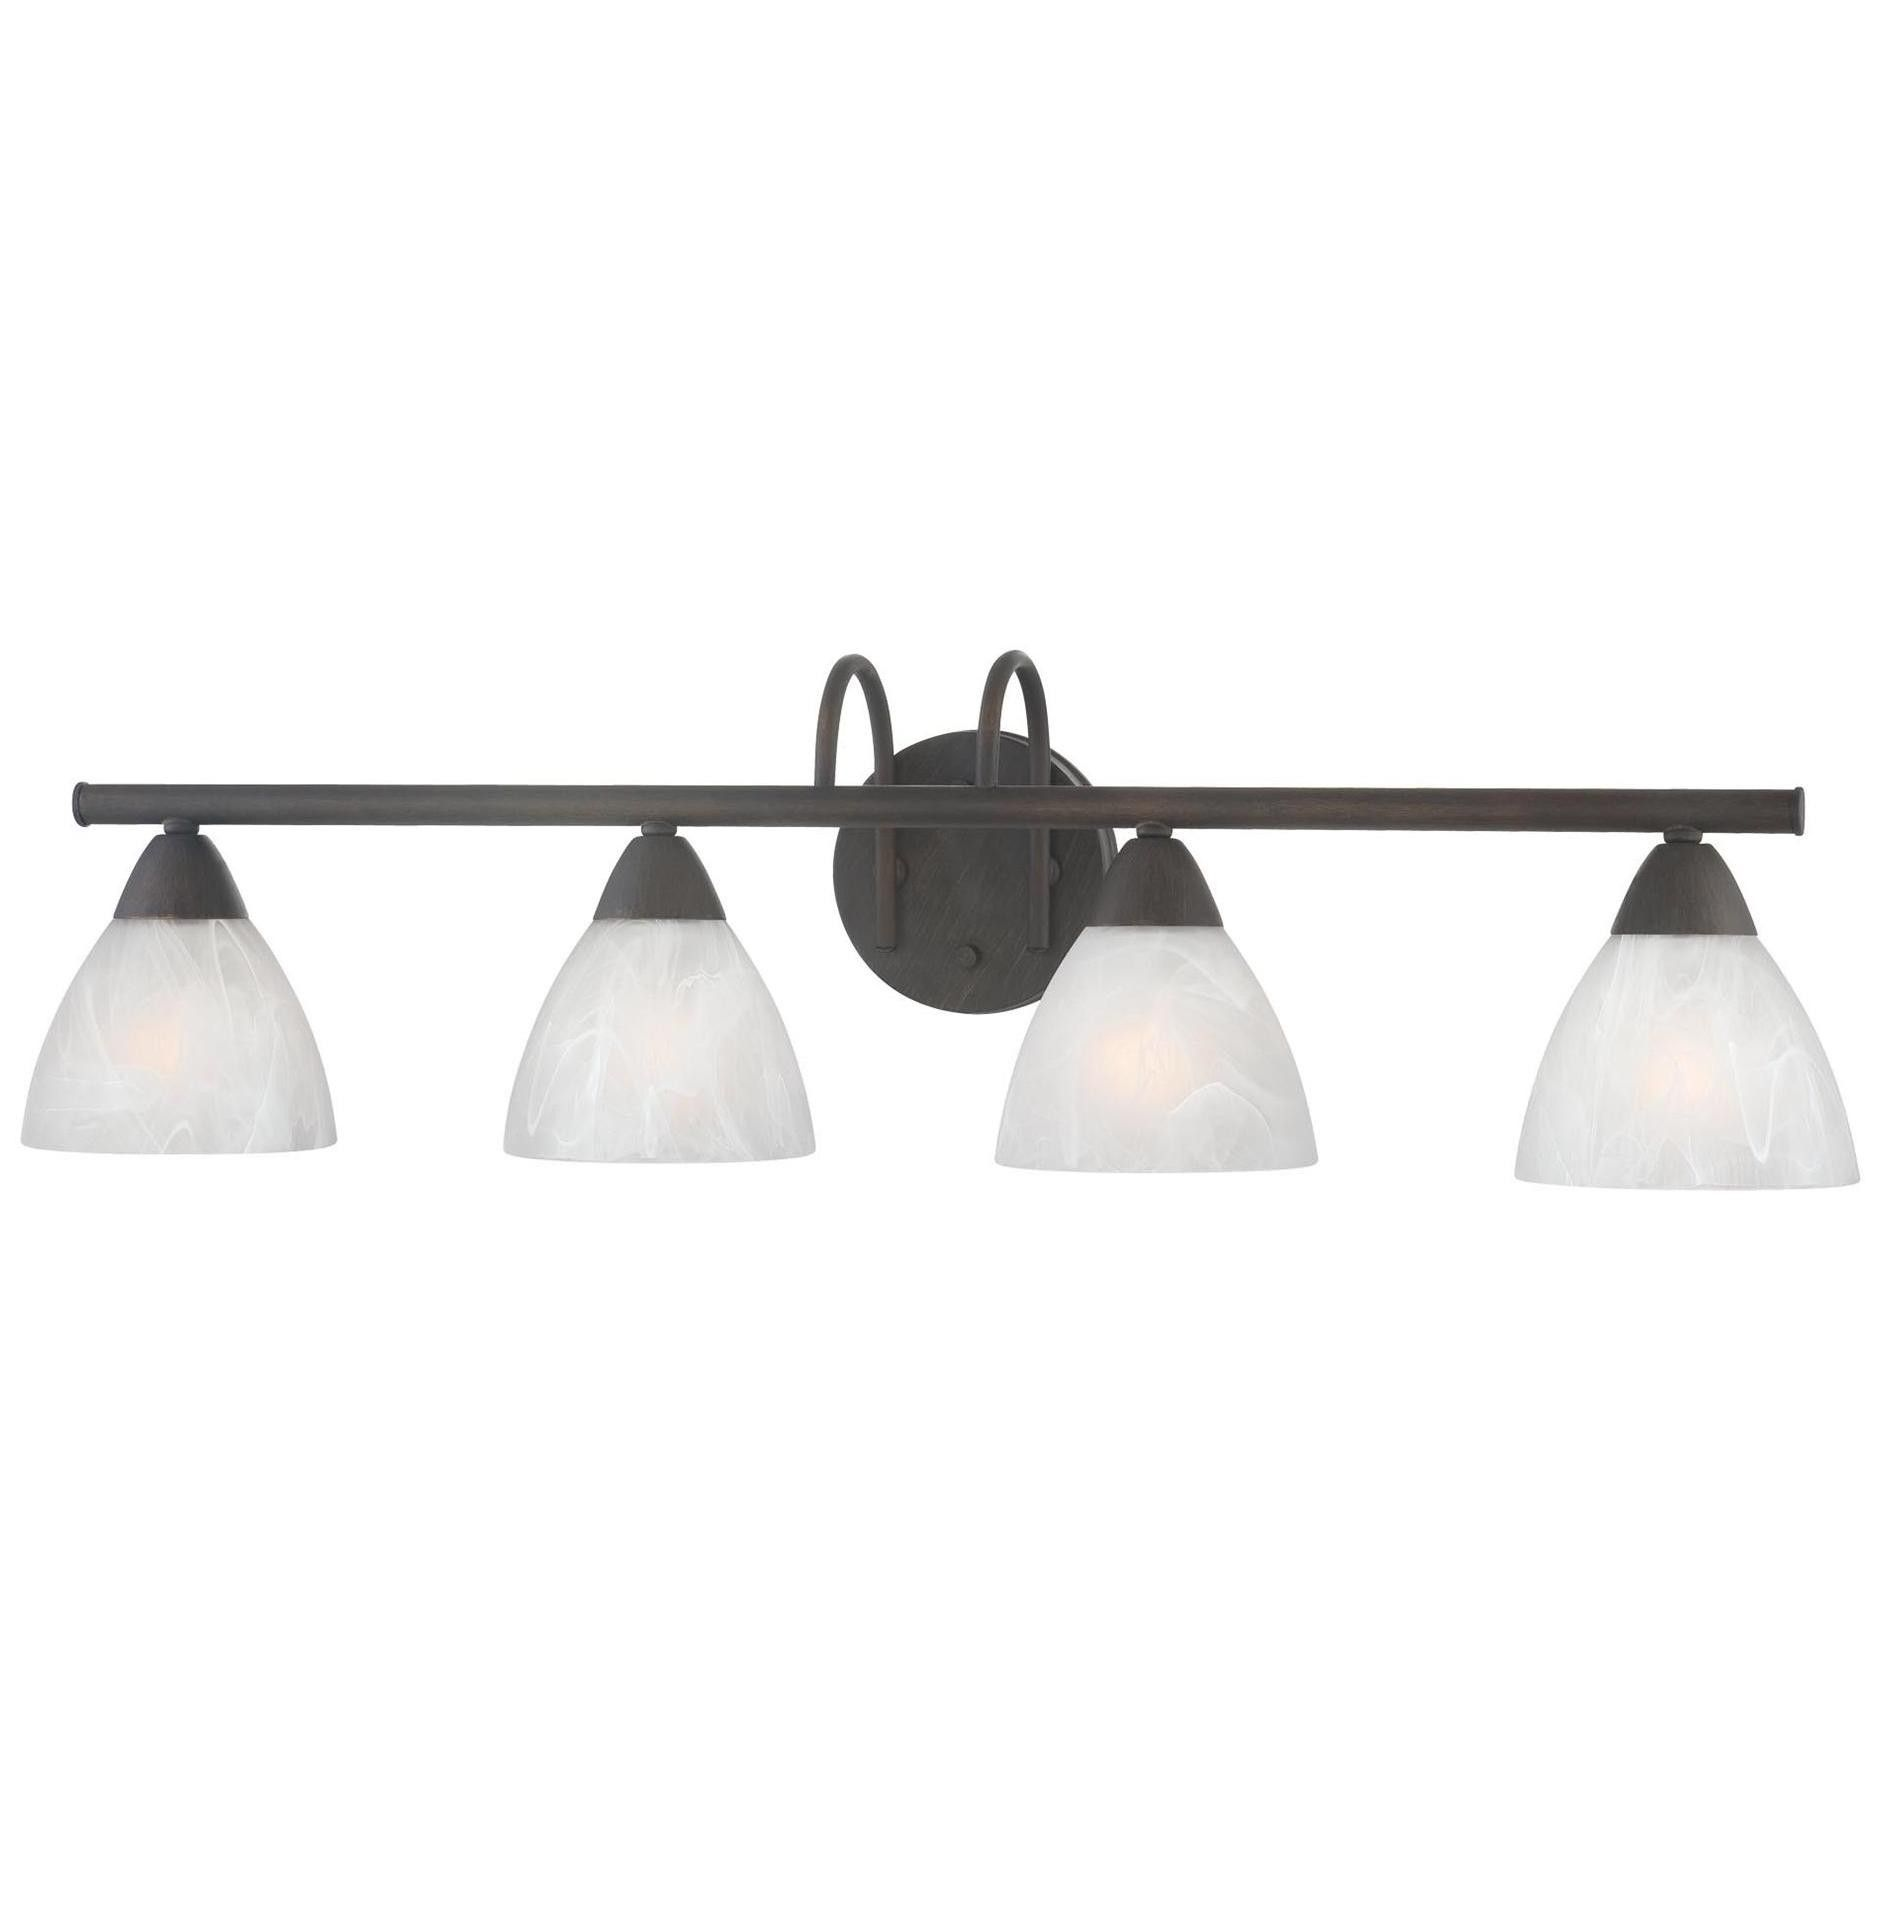 The Thomas Lighting 190018763 Tia 4-Light Bathroom Fixture provides a simple, yet elegant design that pairs well with any bathroom. This 4-light bath fixture in an Oil Rubbed Bronze finish  and decorative etched glass adds a traditional decor to your bath. Perfect for hallways, bedrooms, bathrooms and stairways. Includes all mounting hardware and Lifetime Limitied Warranty.